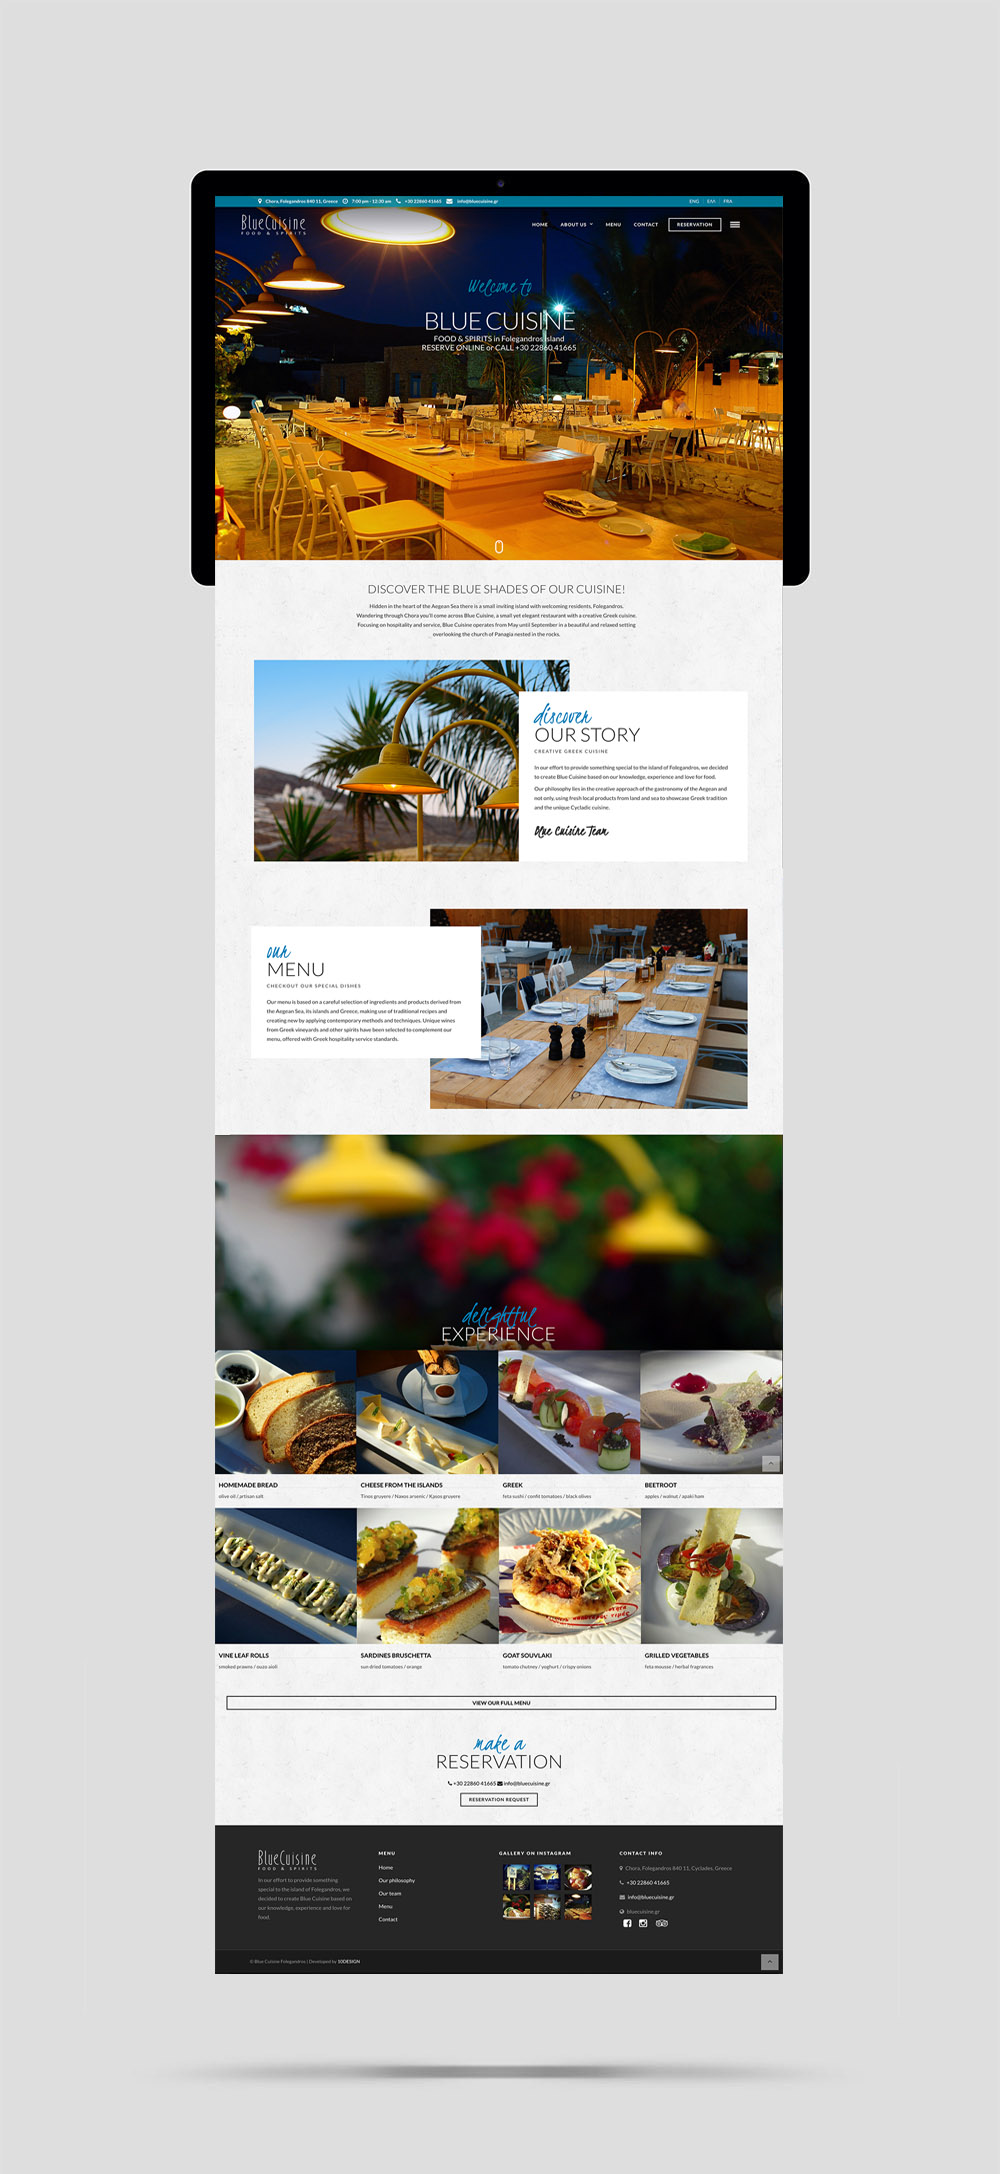 Blue Cuisine Restaurant website design and construction